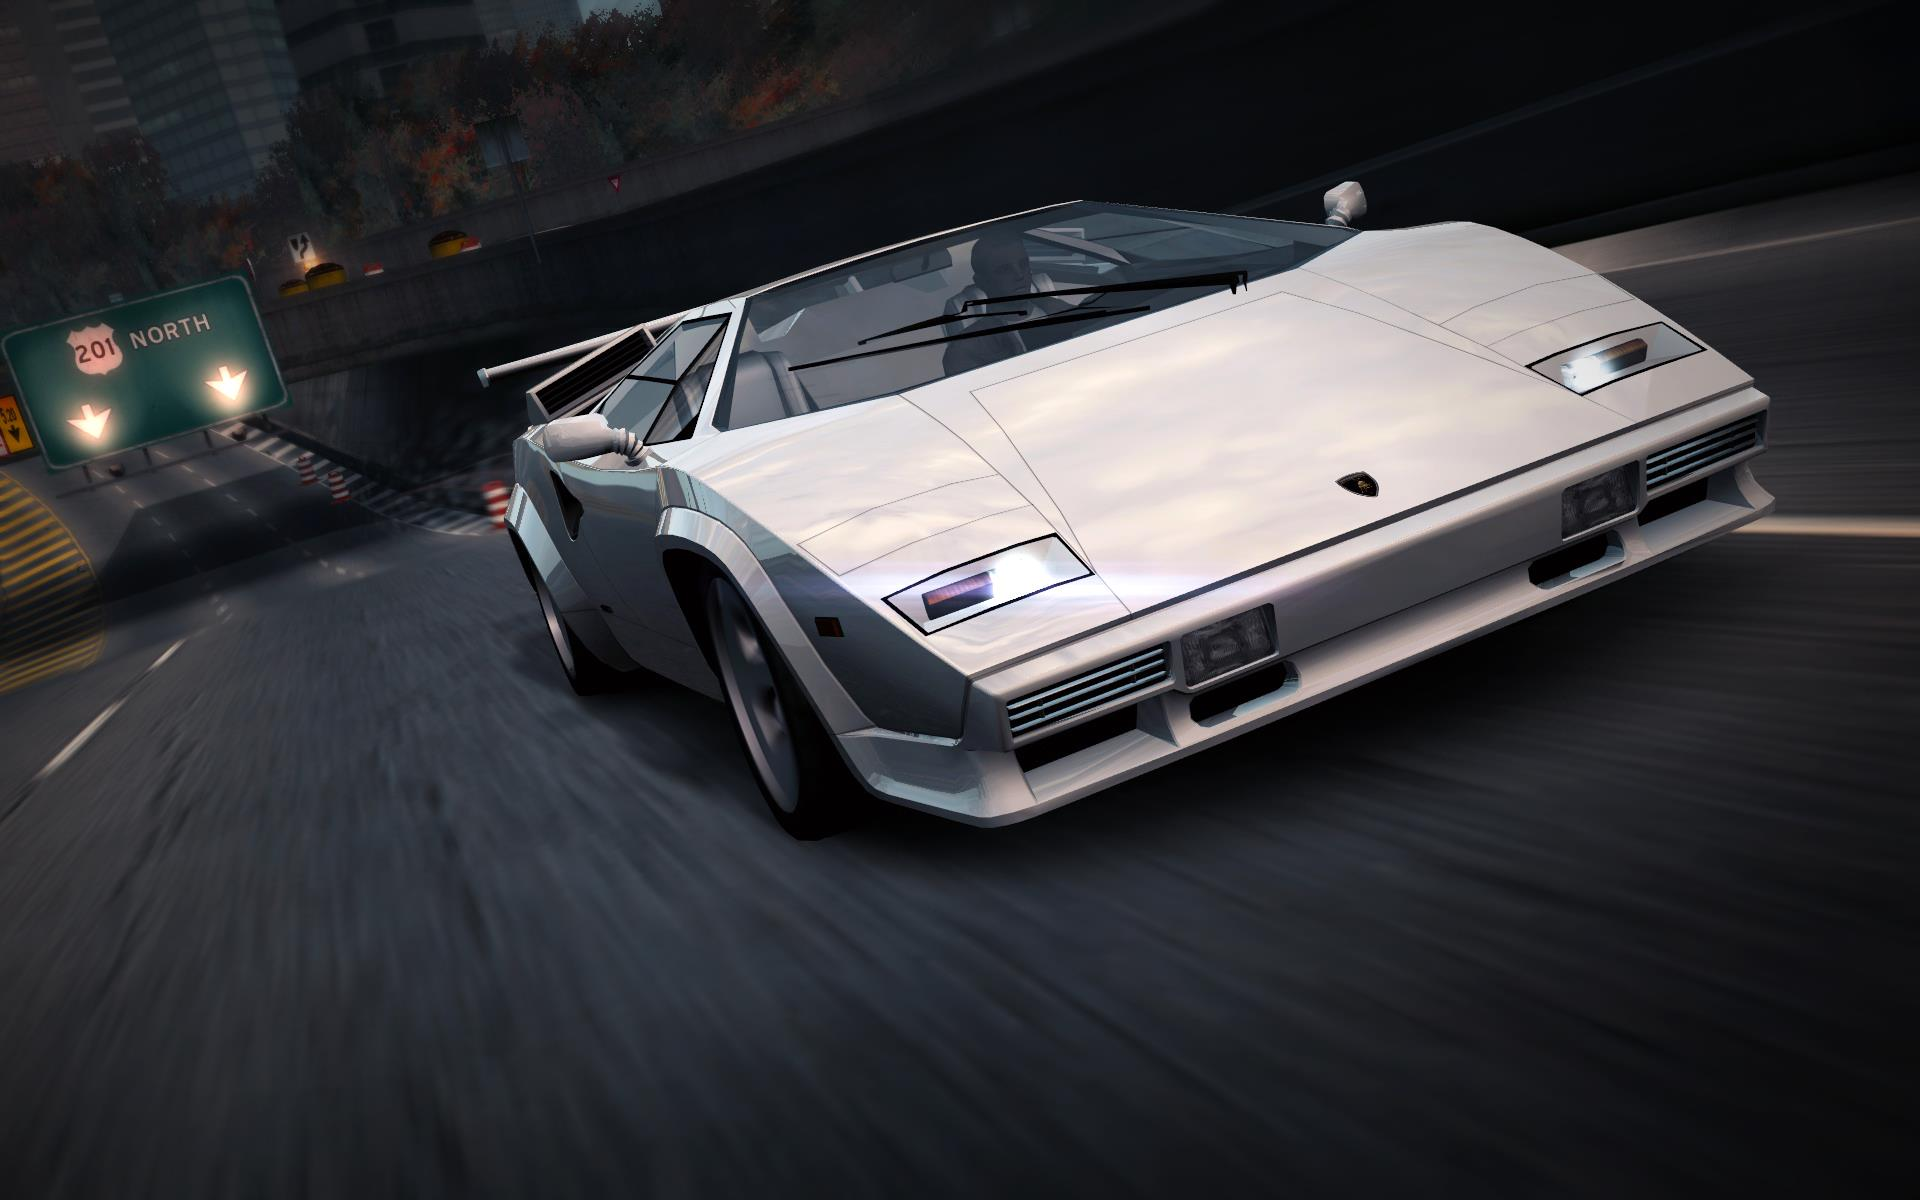 overseal car pin lamborghini sale classic kingdom performance in derbyshire and countach united for